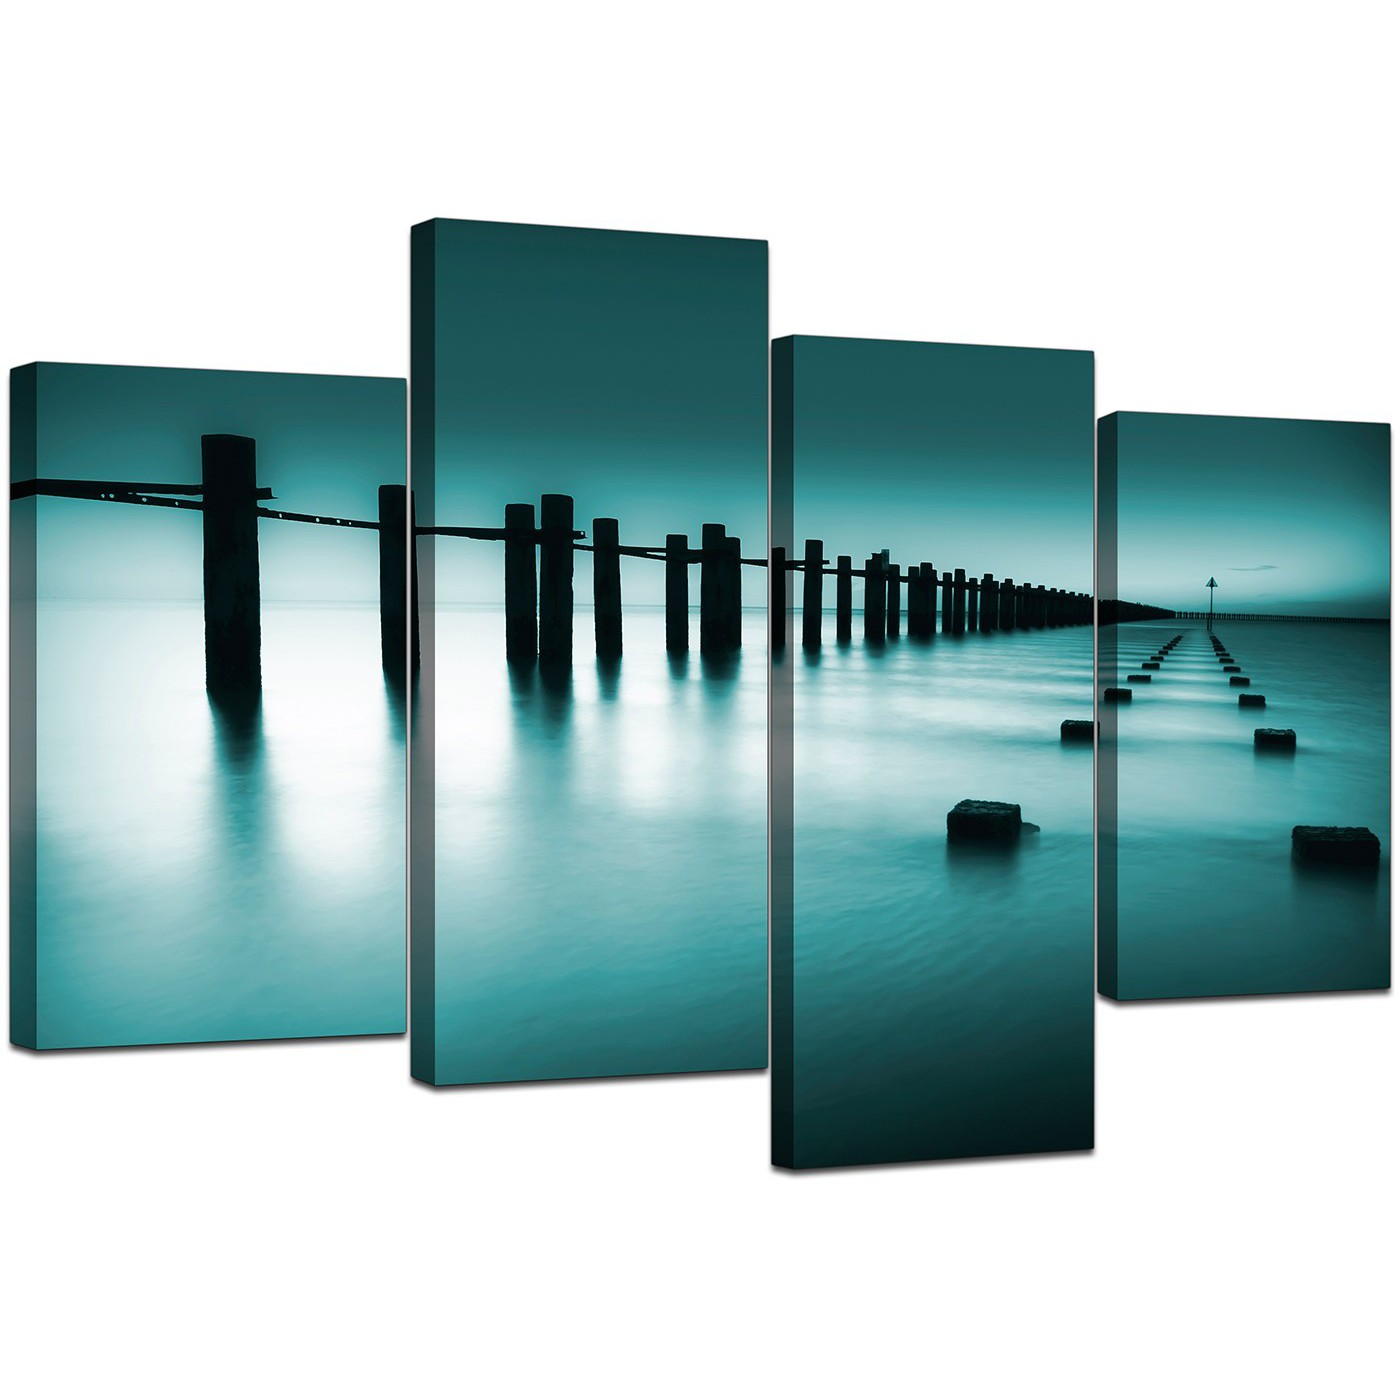 Teal Canvas Wall Art canvas prints of sea in teal for your bathroom